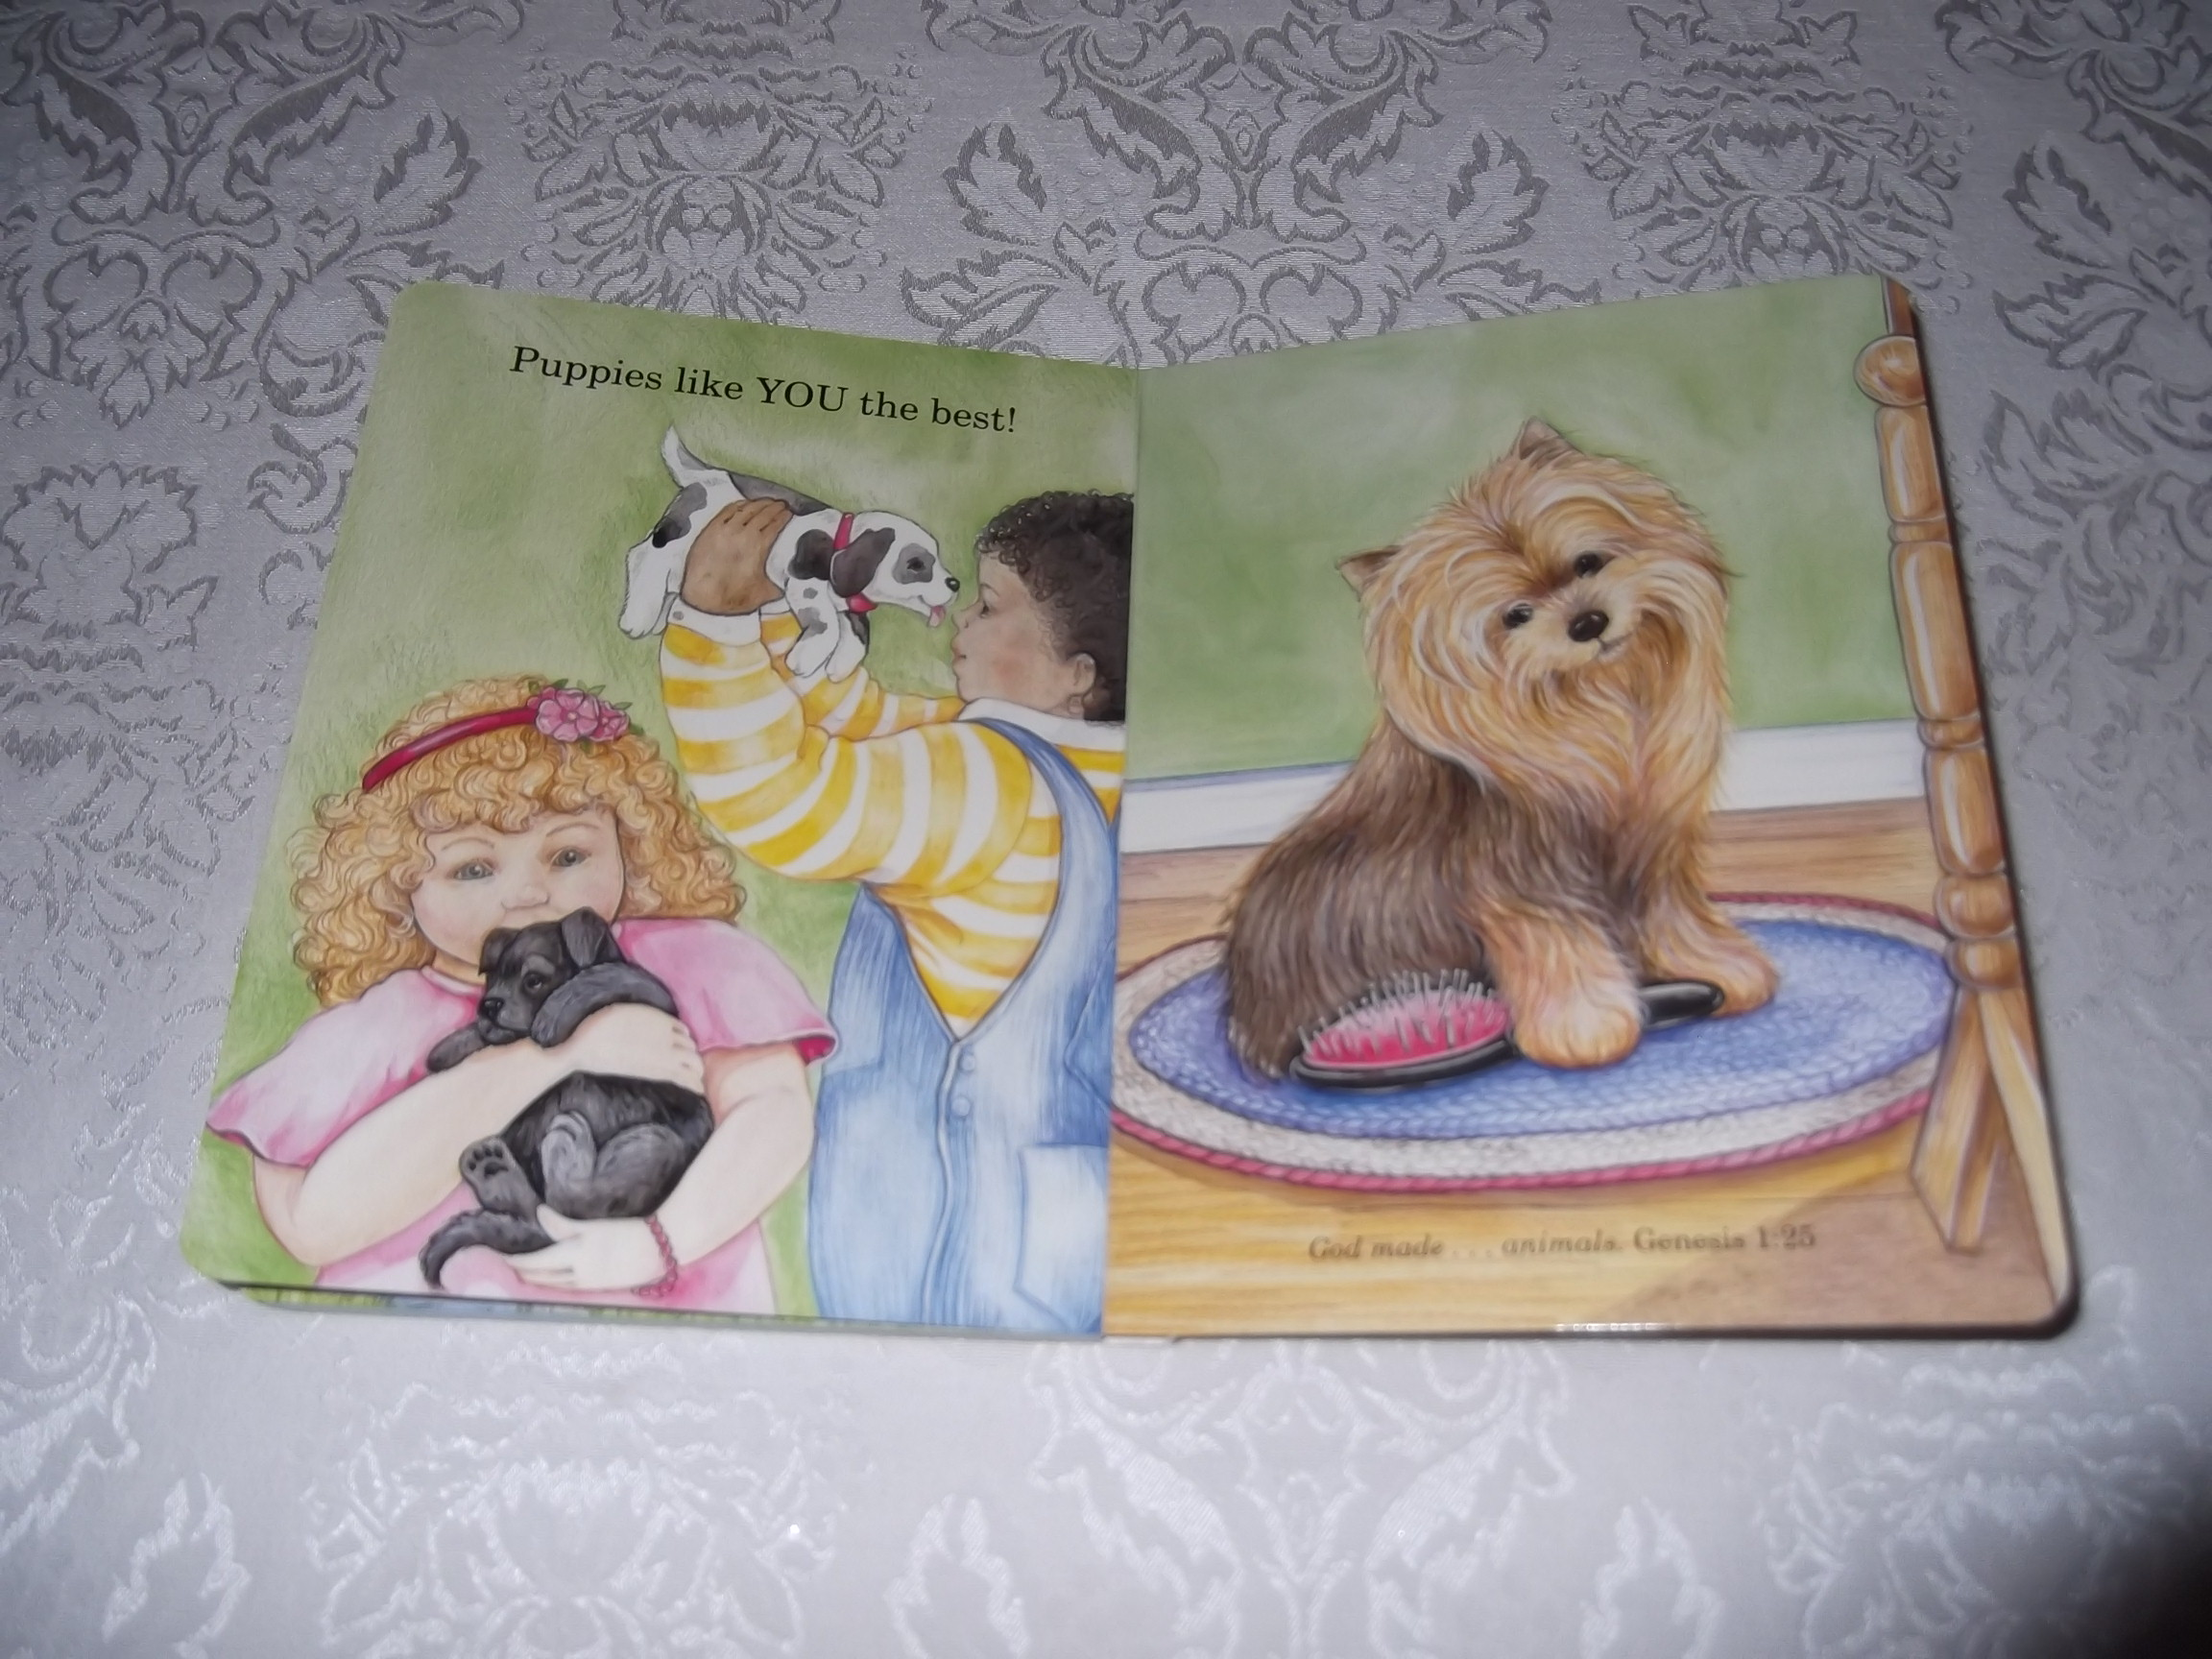 Image 8 of God Made Puppies Marian Bennet Happy Day Brand New Board Book